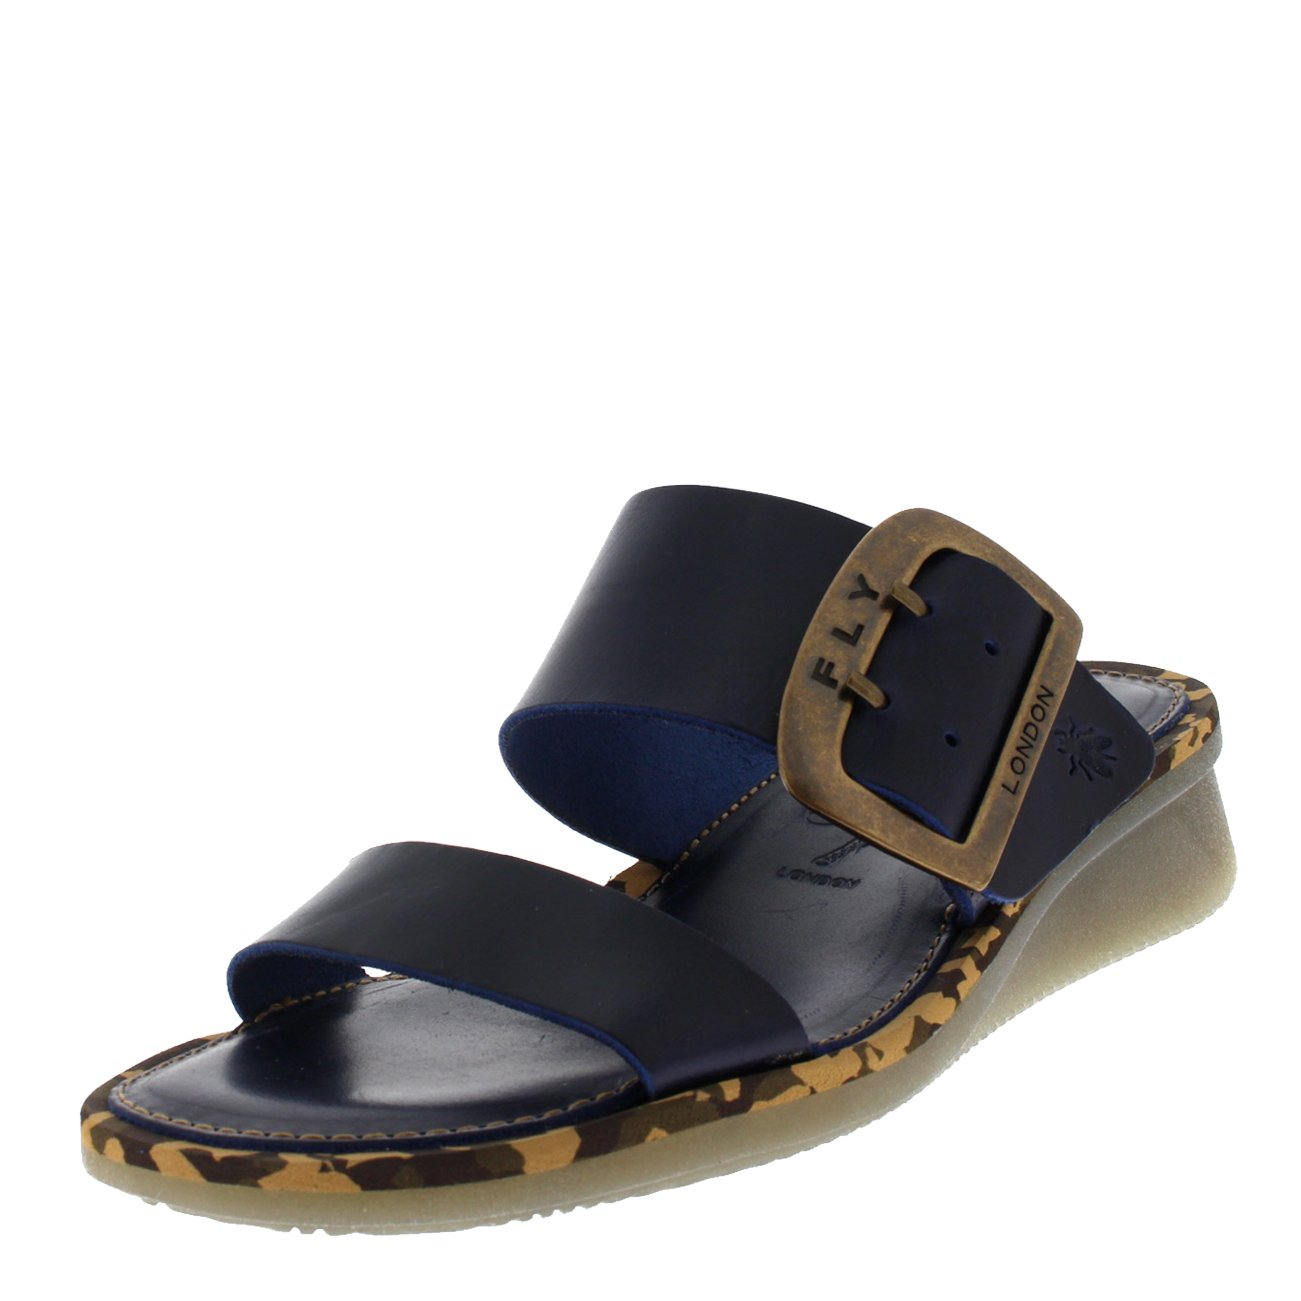 FLY London Womens Cape Beach Leather Summer Holiday Sandal Wedge Heel - Bridle Blue - 8